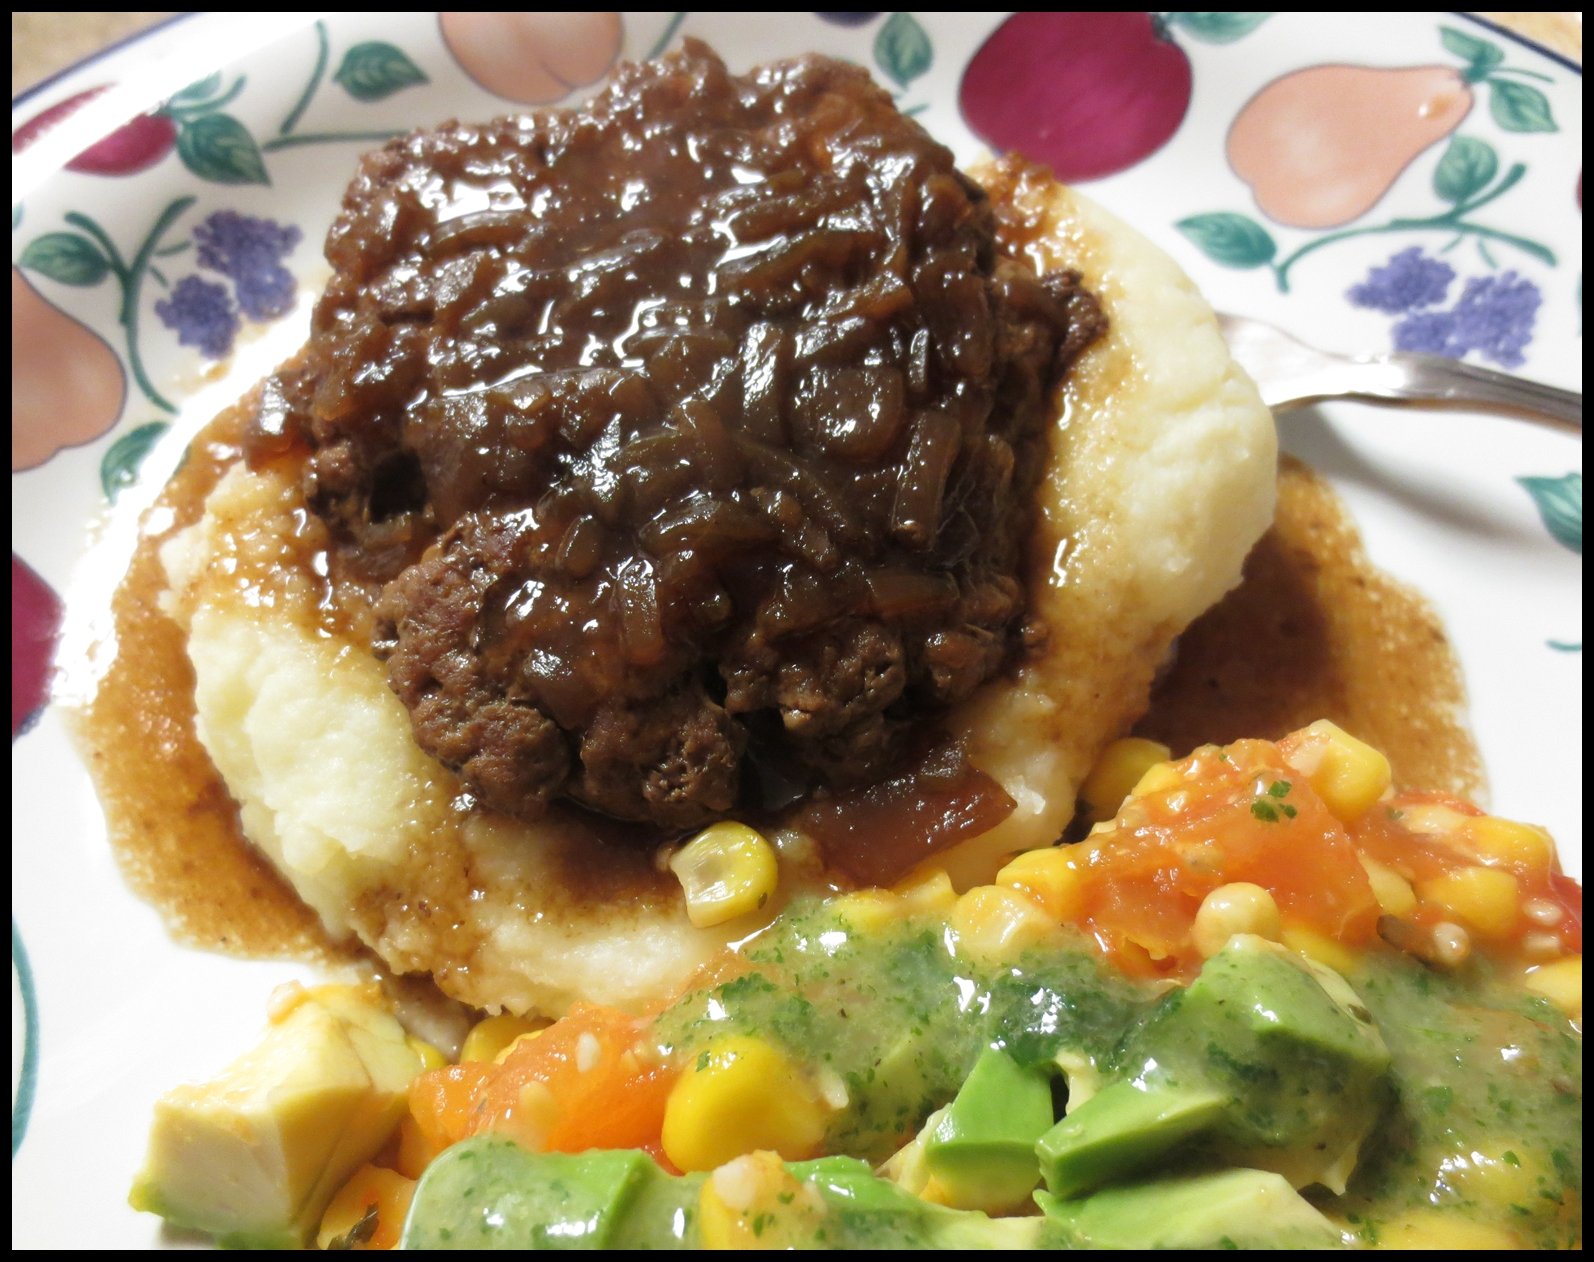 MOMS CRAZY COOKING French ion Burger or Salisbury Steak Style